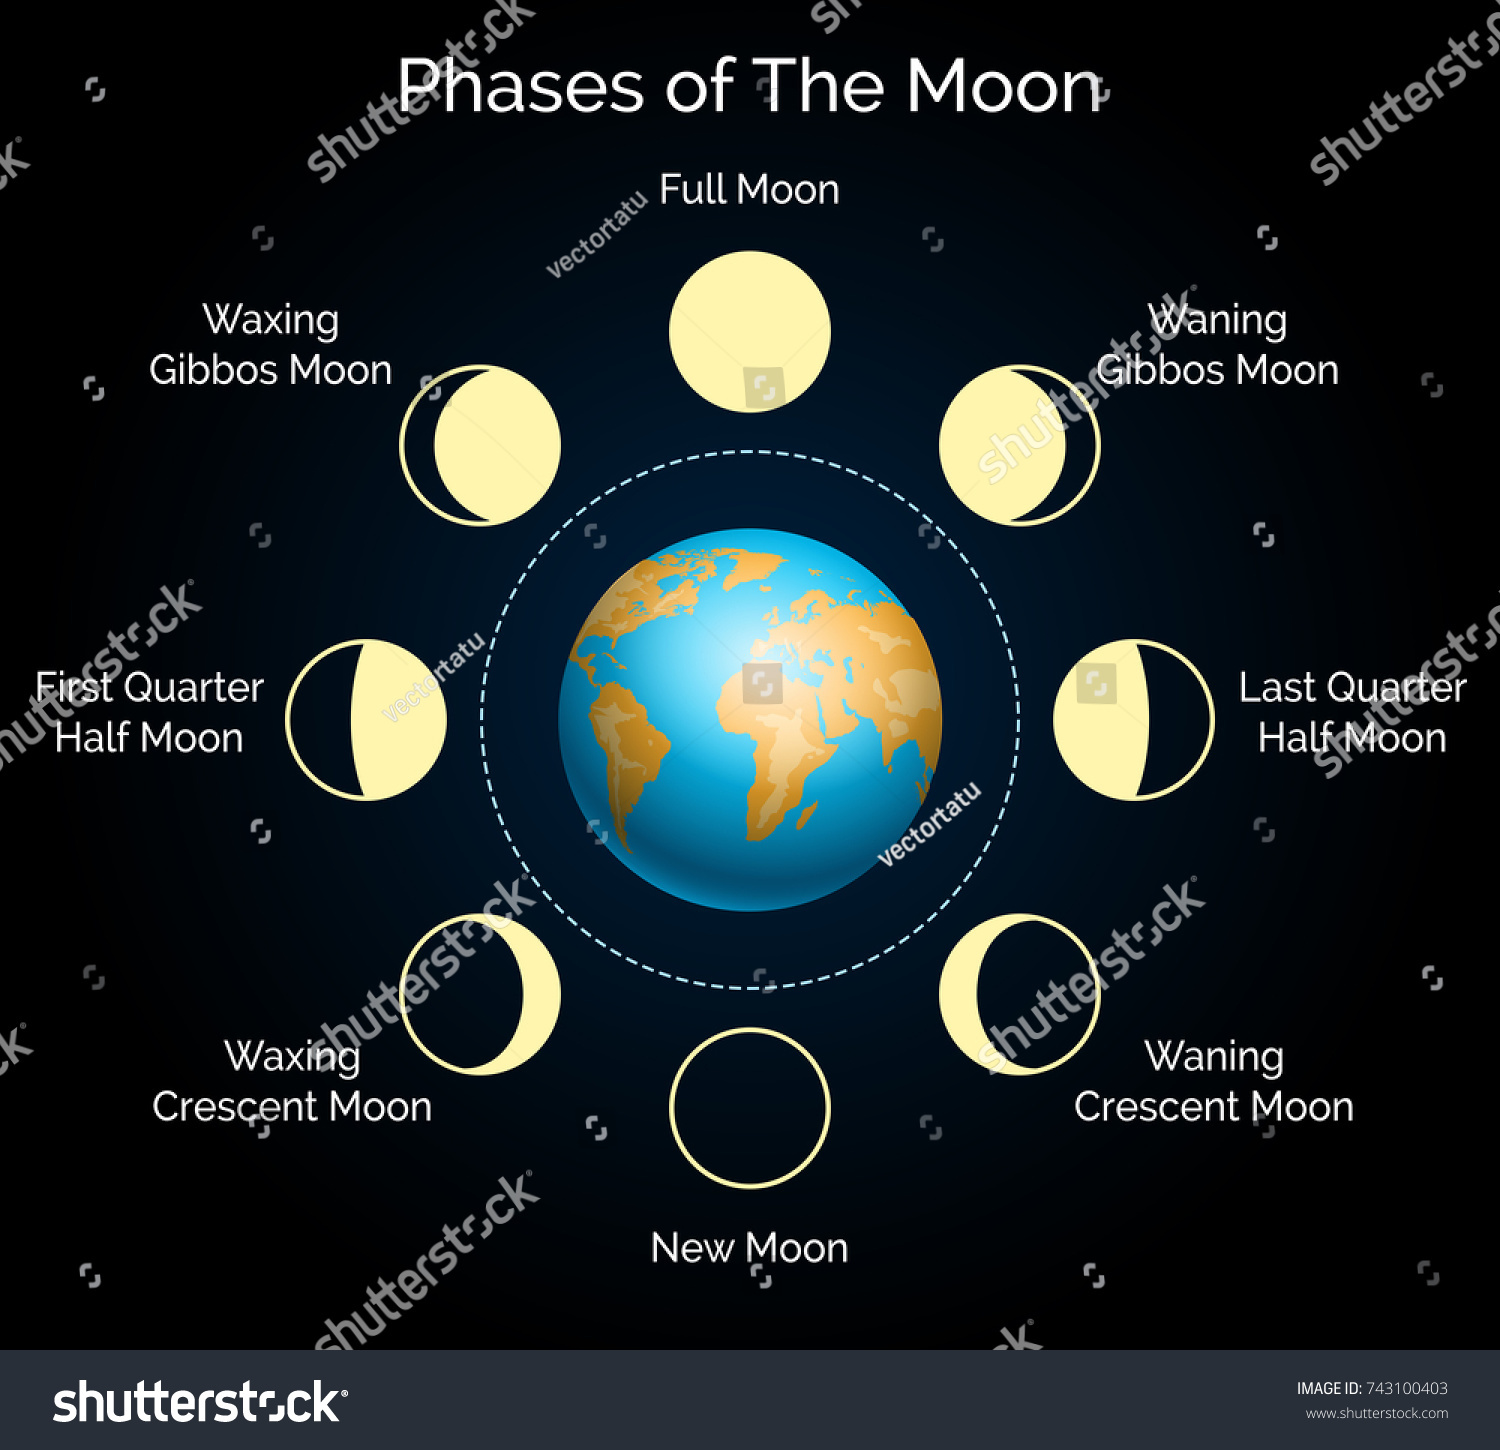 Phases Moon Vector Illustration Earth Lunar Stock Vektorgrafik Diagram Of The And Phase Set With Shadow Moonlight